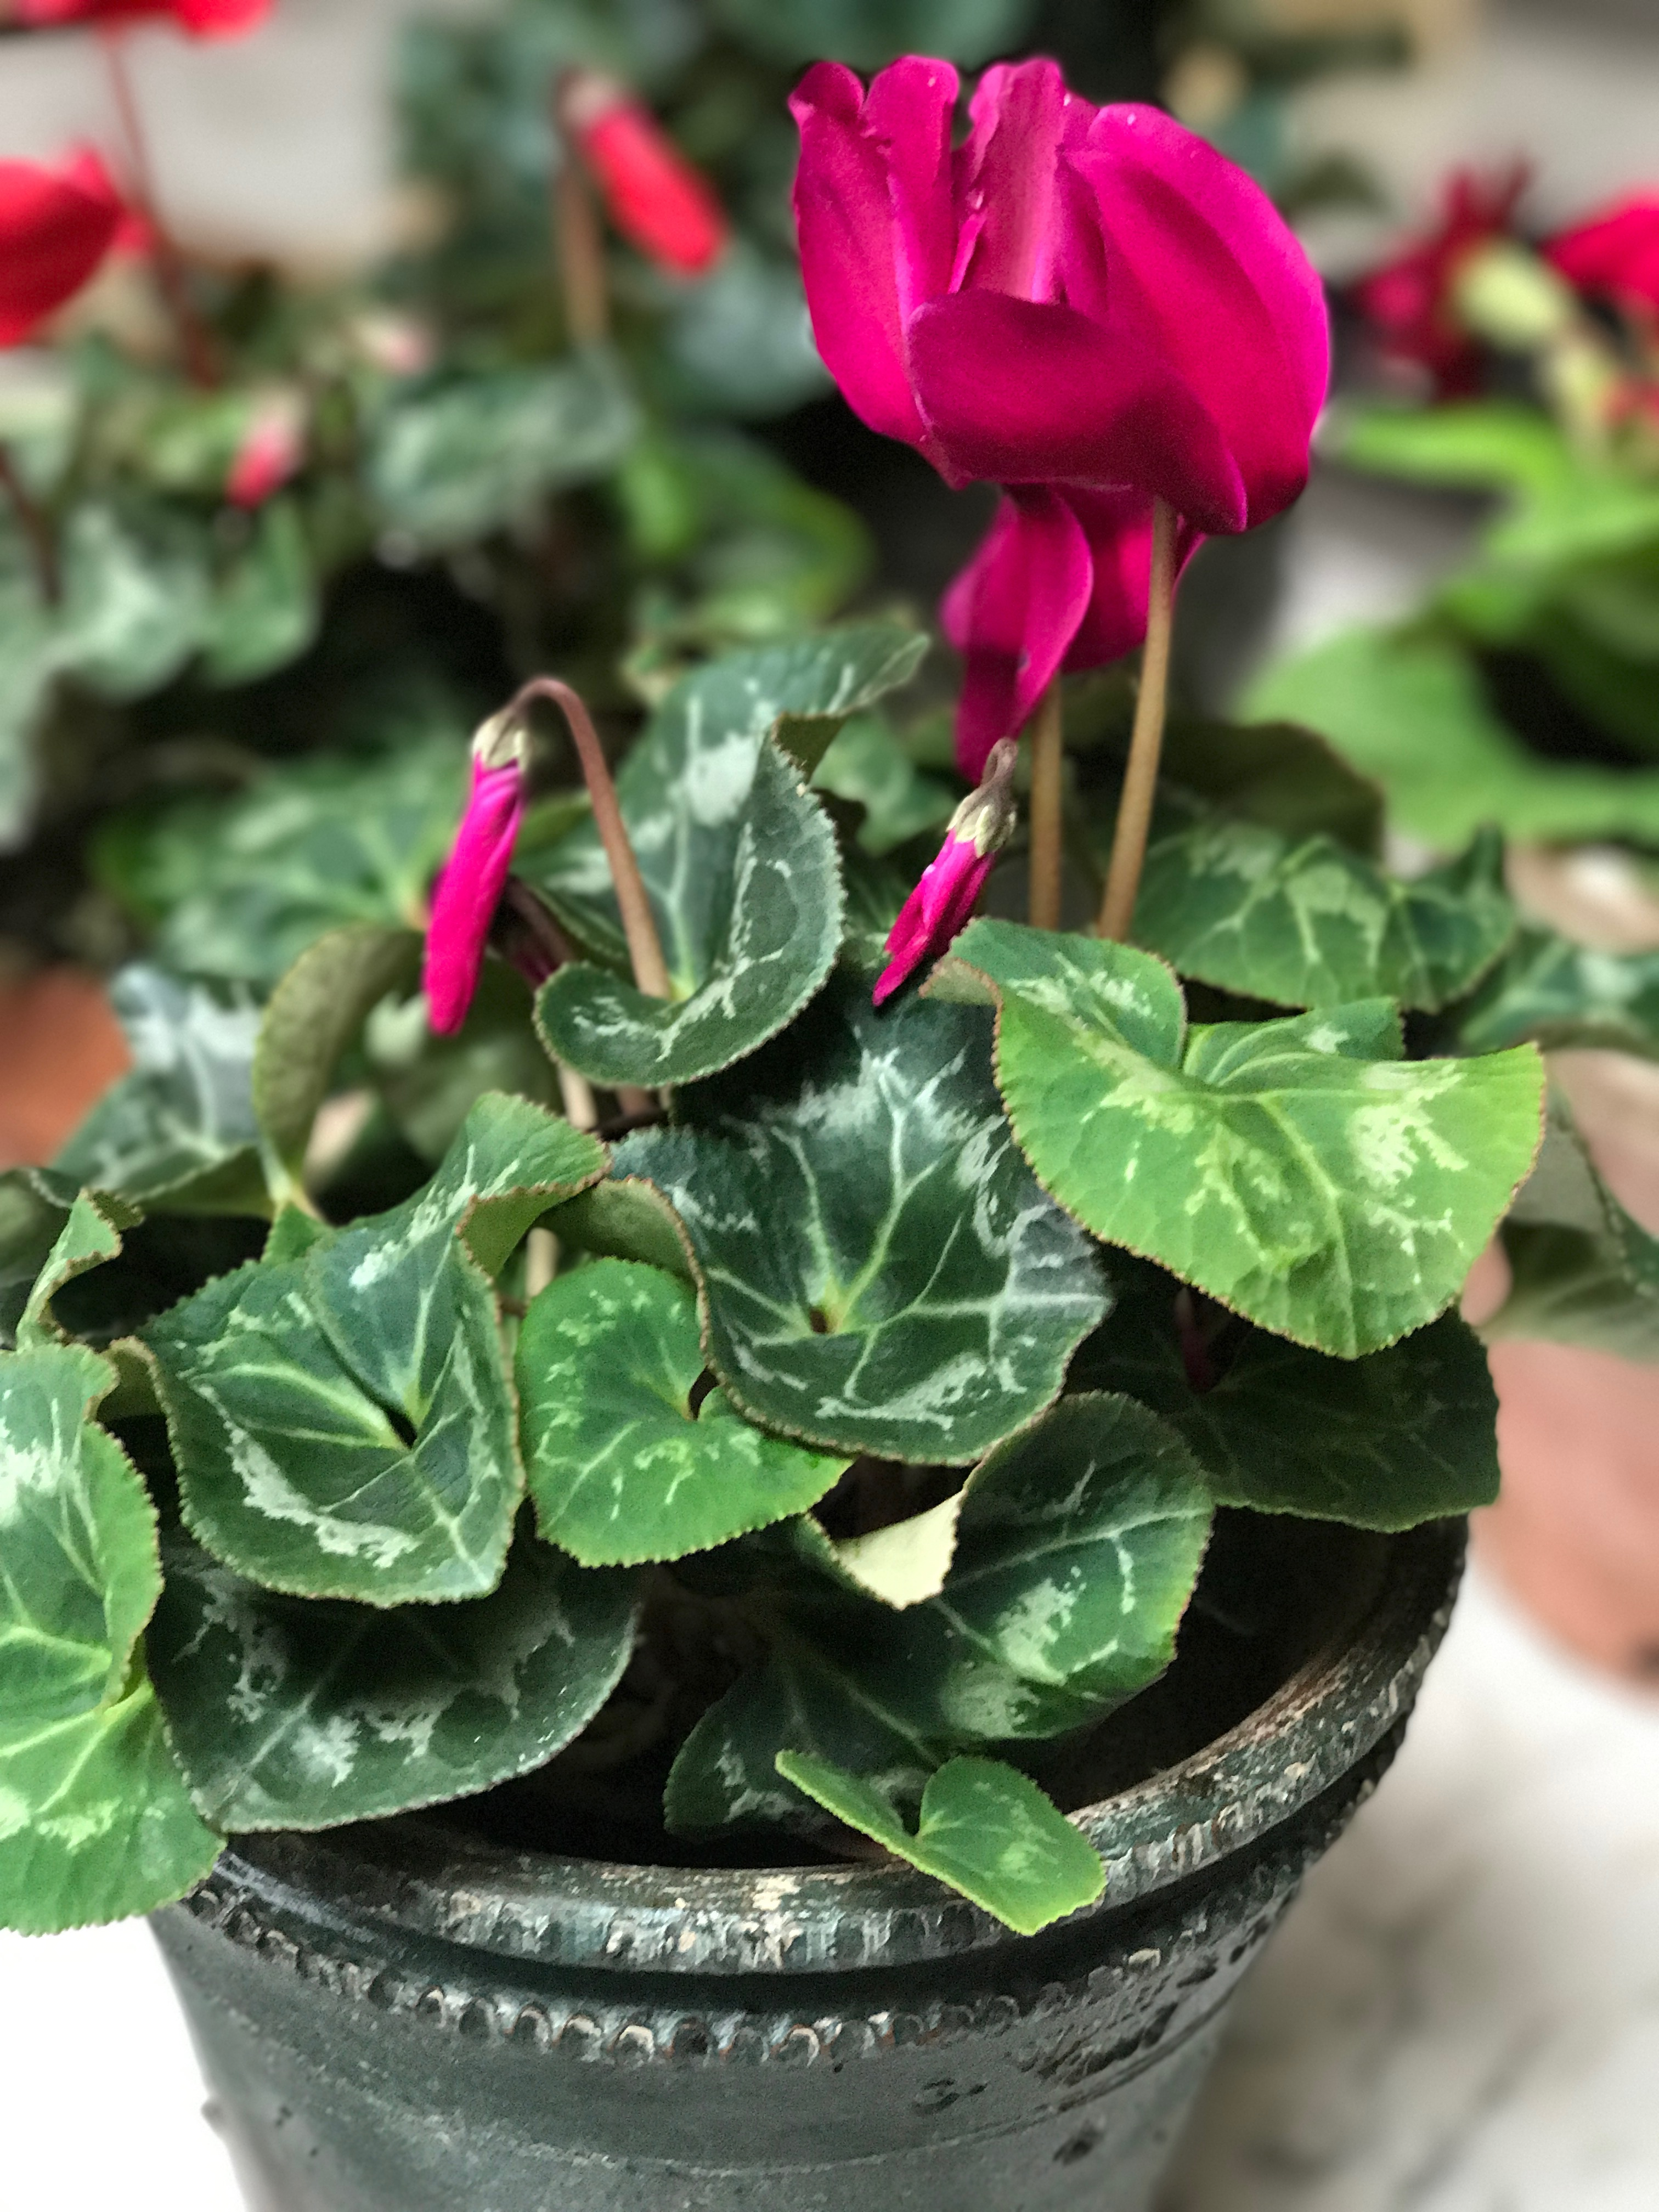 cyclamen come in beautiful shades ranging from white to pale pink coral to red new varieties are now available which are bicolor with ruffled flowers